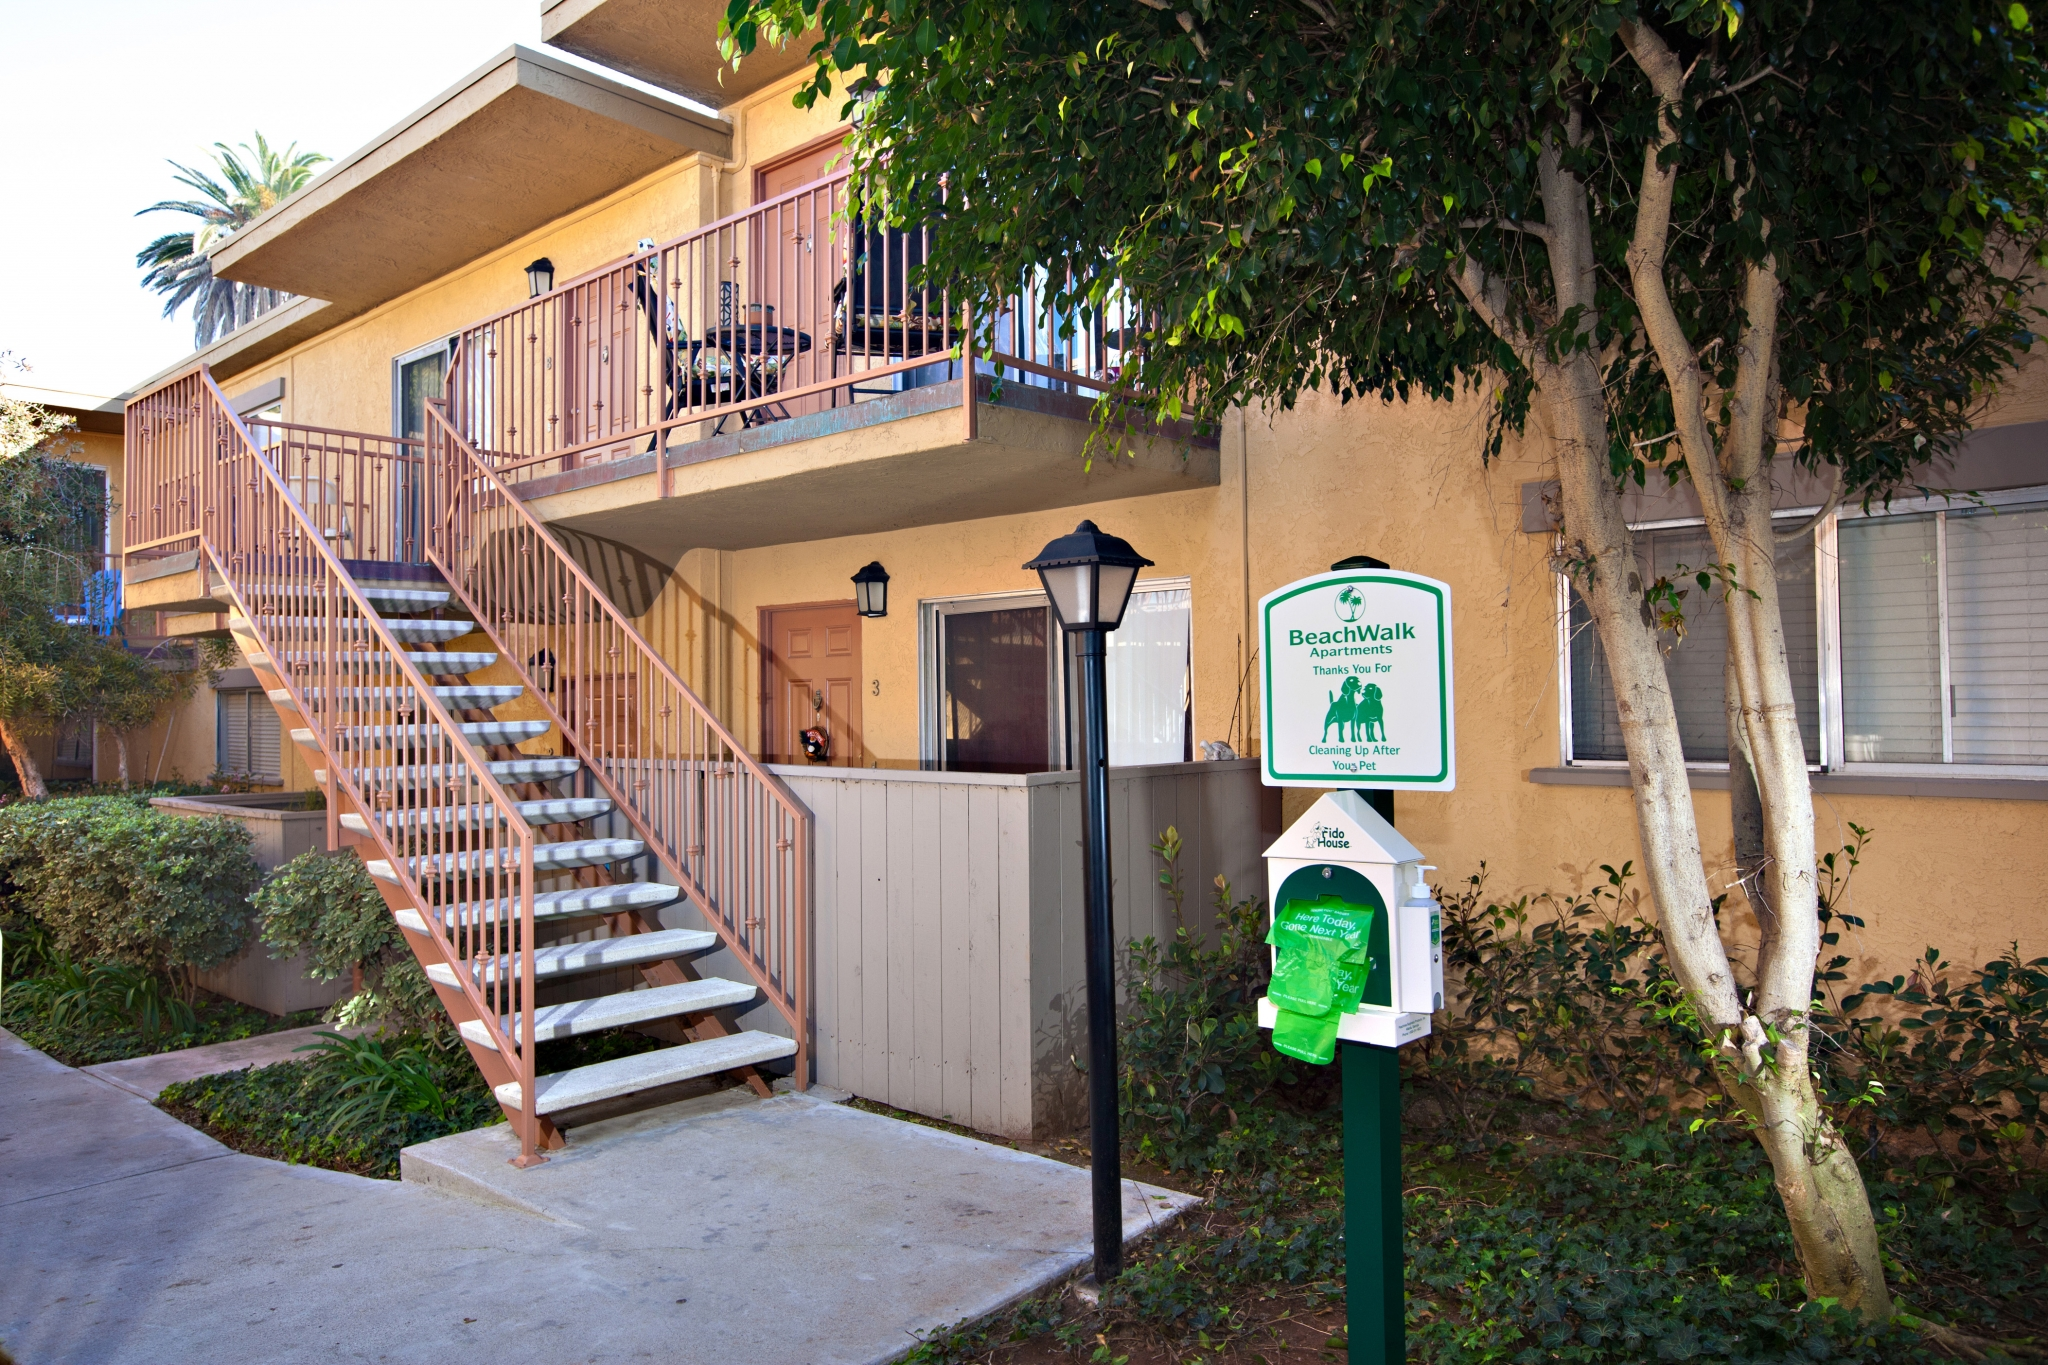 bed 1 2 bath apartment for rent in san diego ca ad 62054